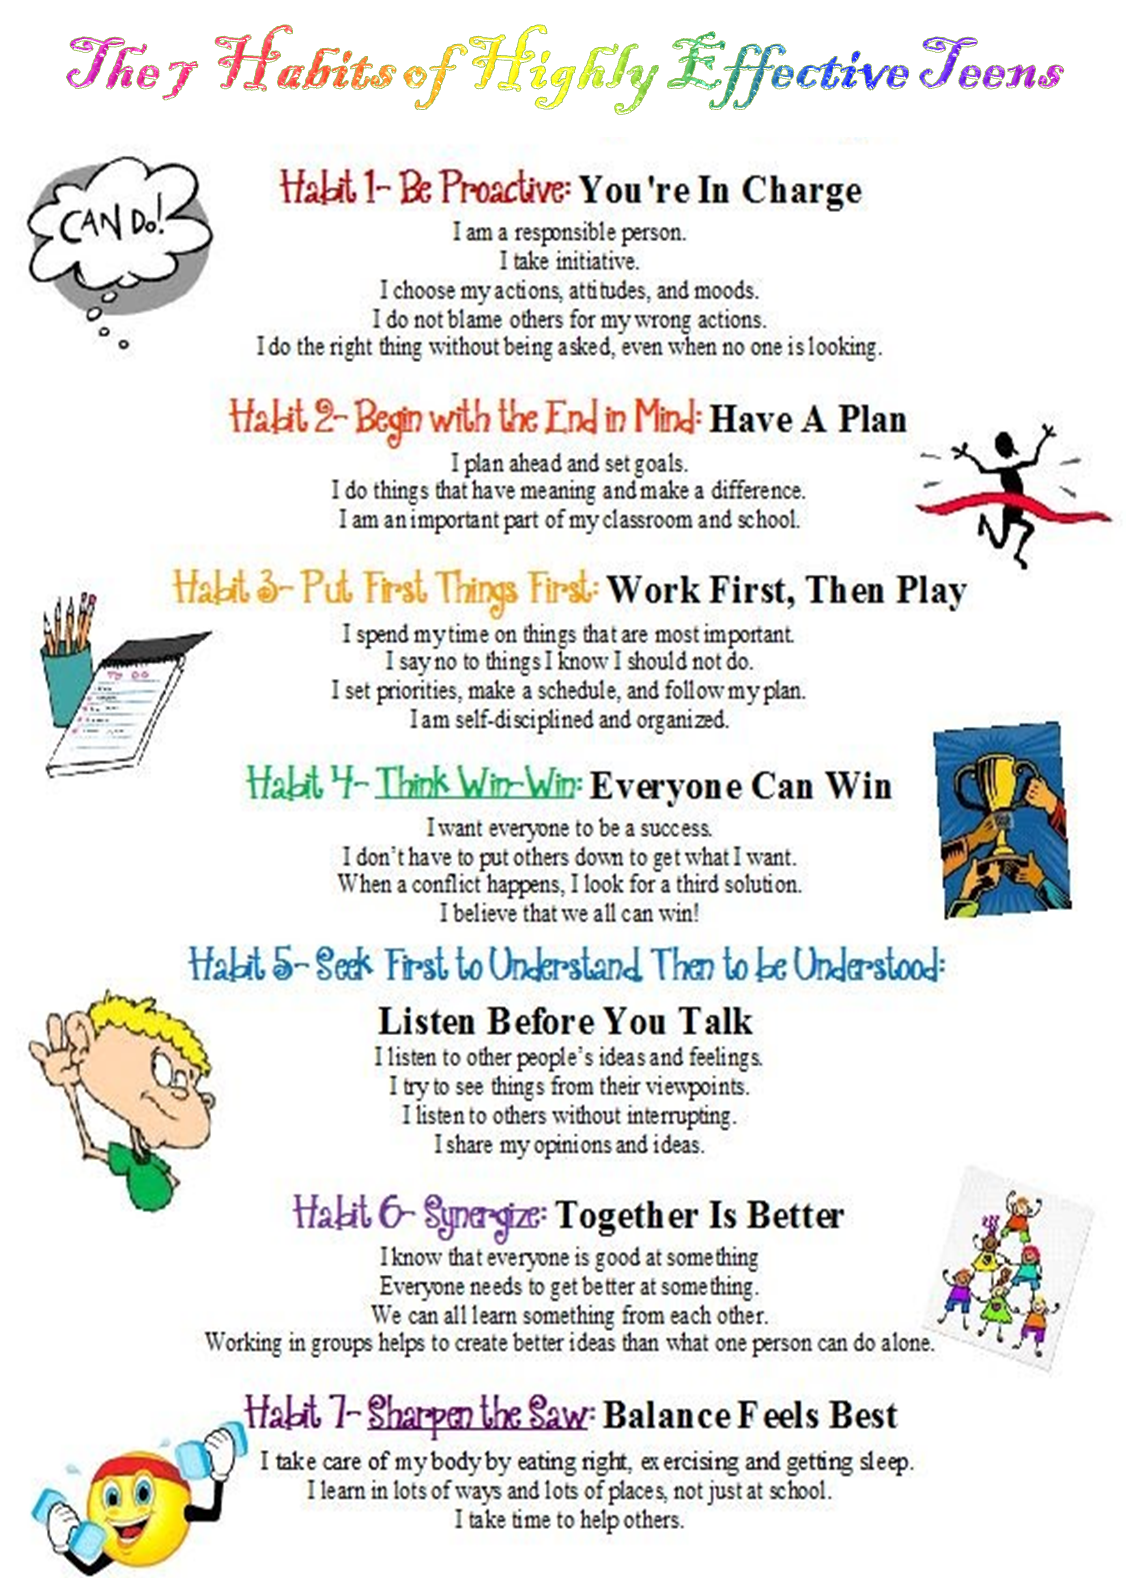 Worksheets 7 Habits Of Highly Effective Teens Worksheets 7 habits of highly effective teens zilwaukee i want to use this in my